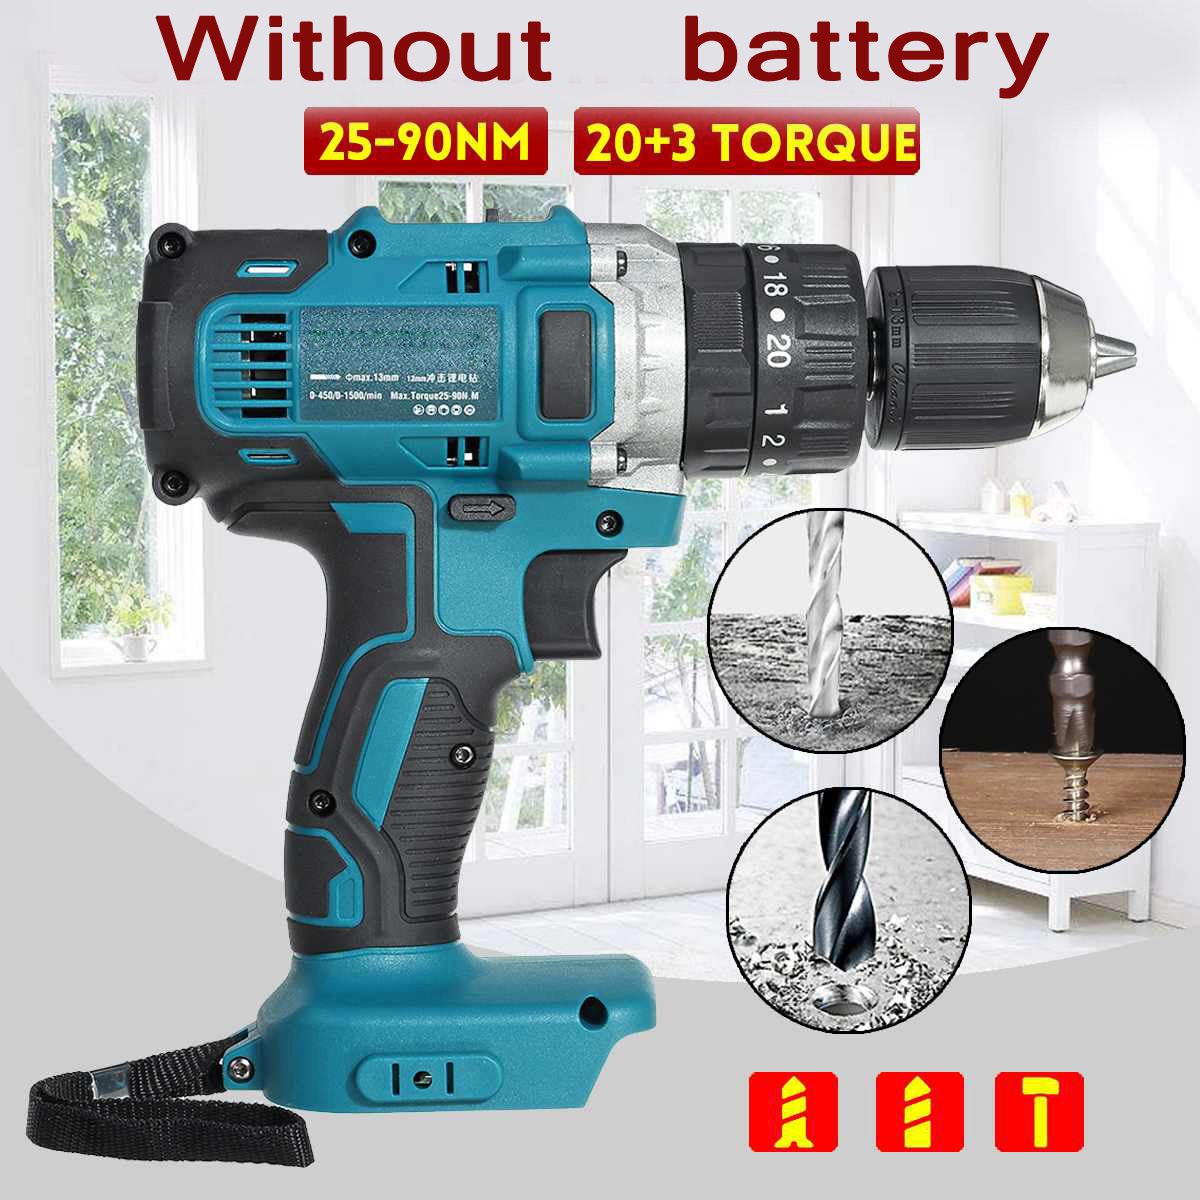 For Makita 18V 90N.m Electric Cordless Drill Hammer Screwdriver 3-In-1 1500 RPM Power Tools Brushless Cordless Impact Drill